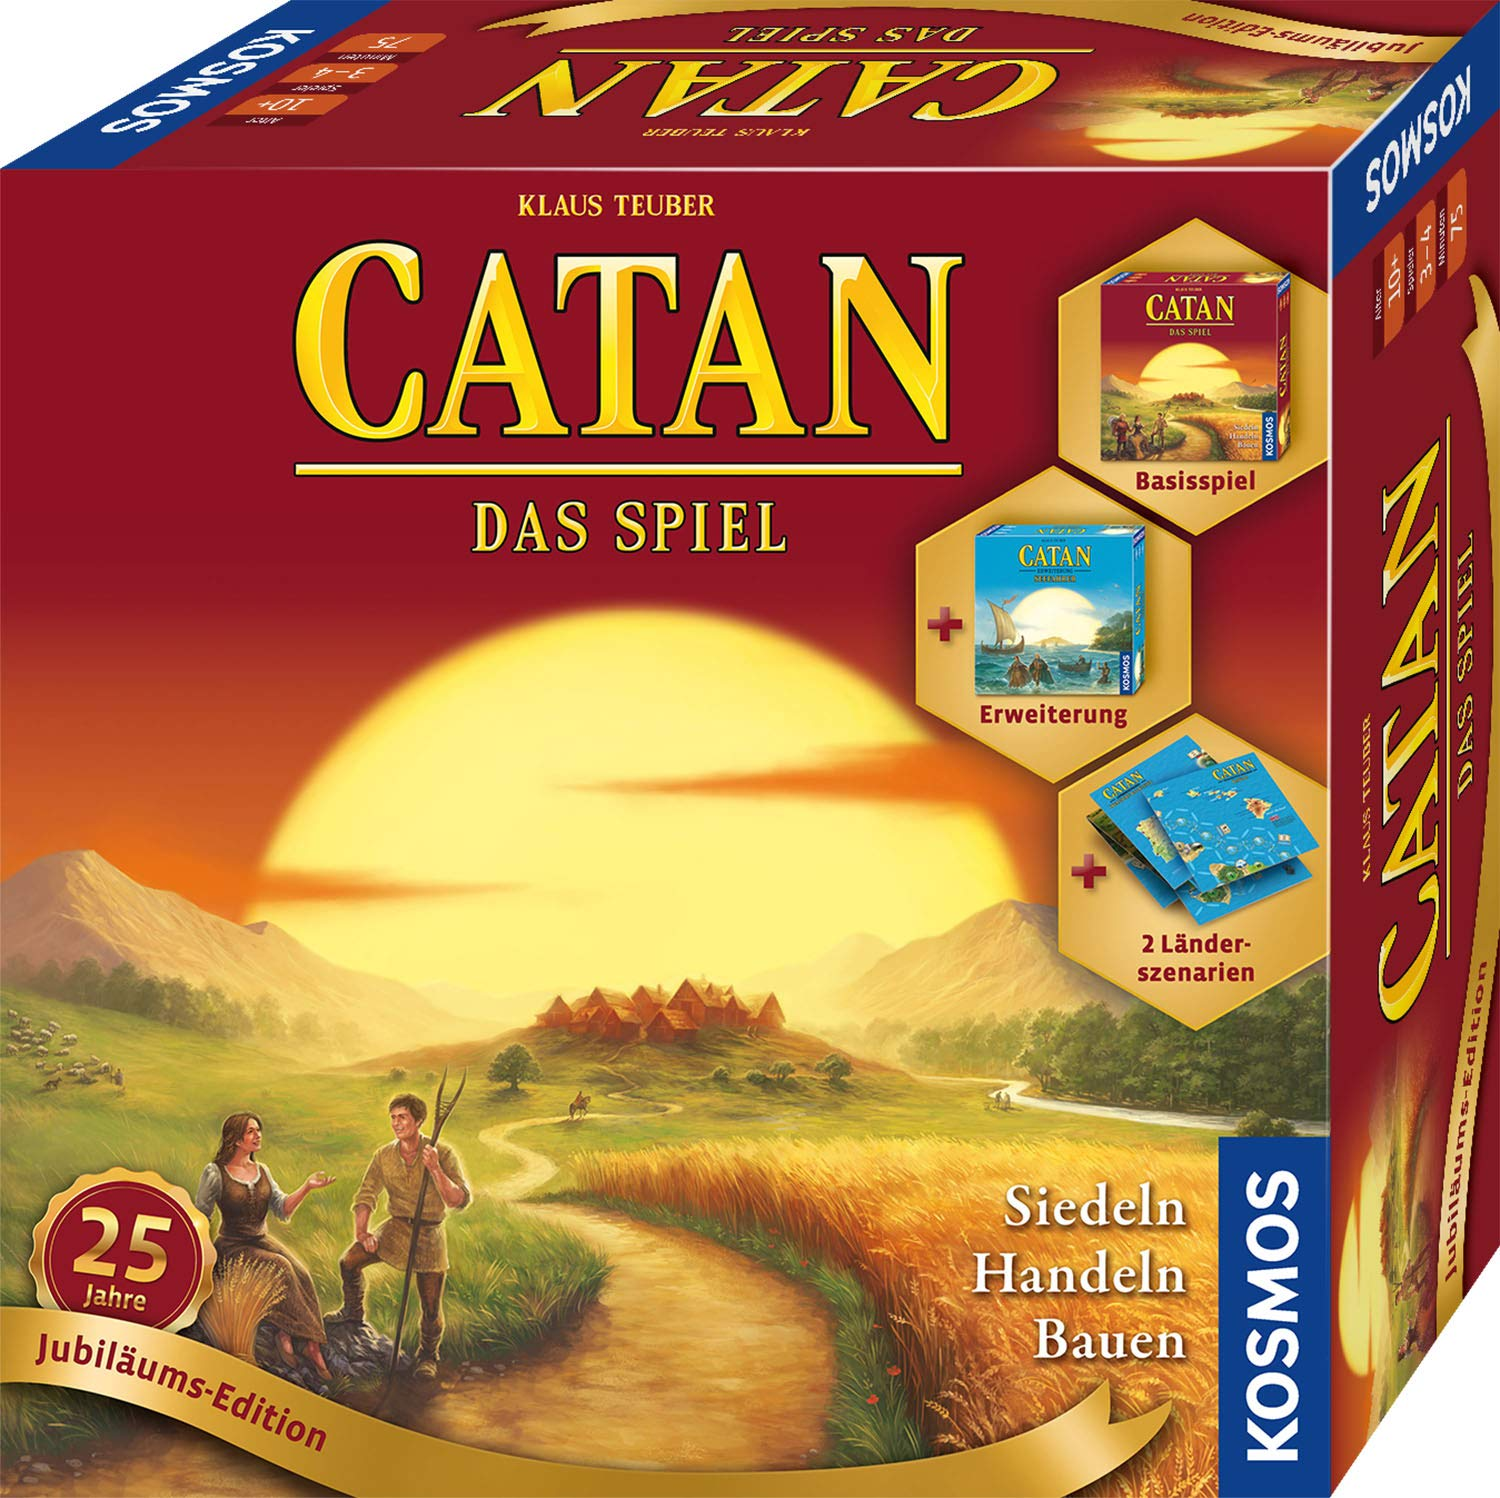 Catan - Jubiläums-Edition 2020: das spiel: Amazon.es: Libros en idiomas extranjeros